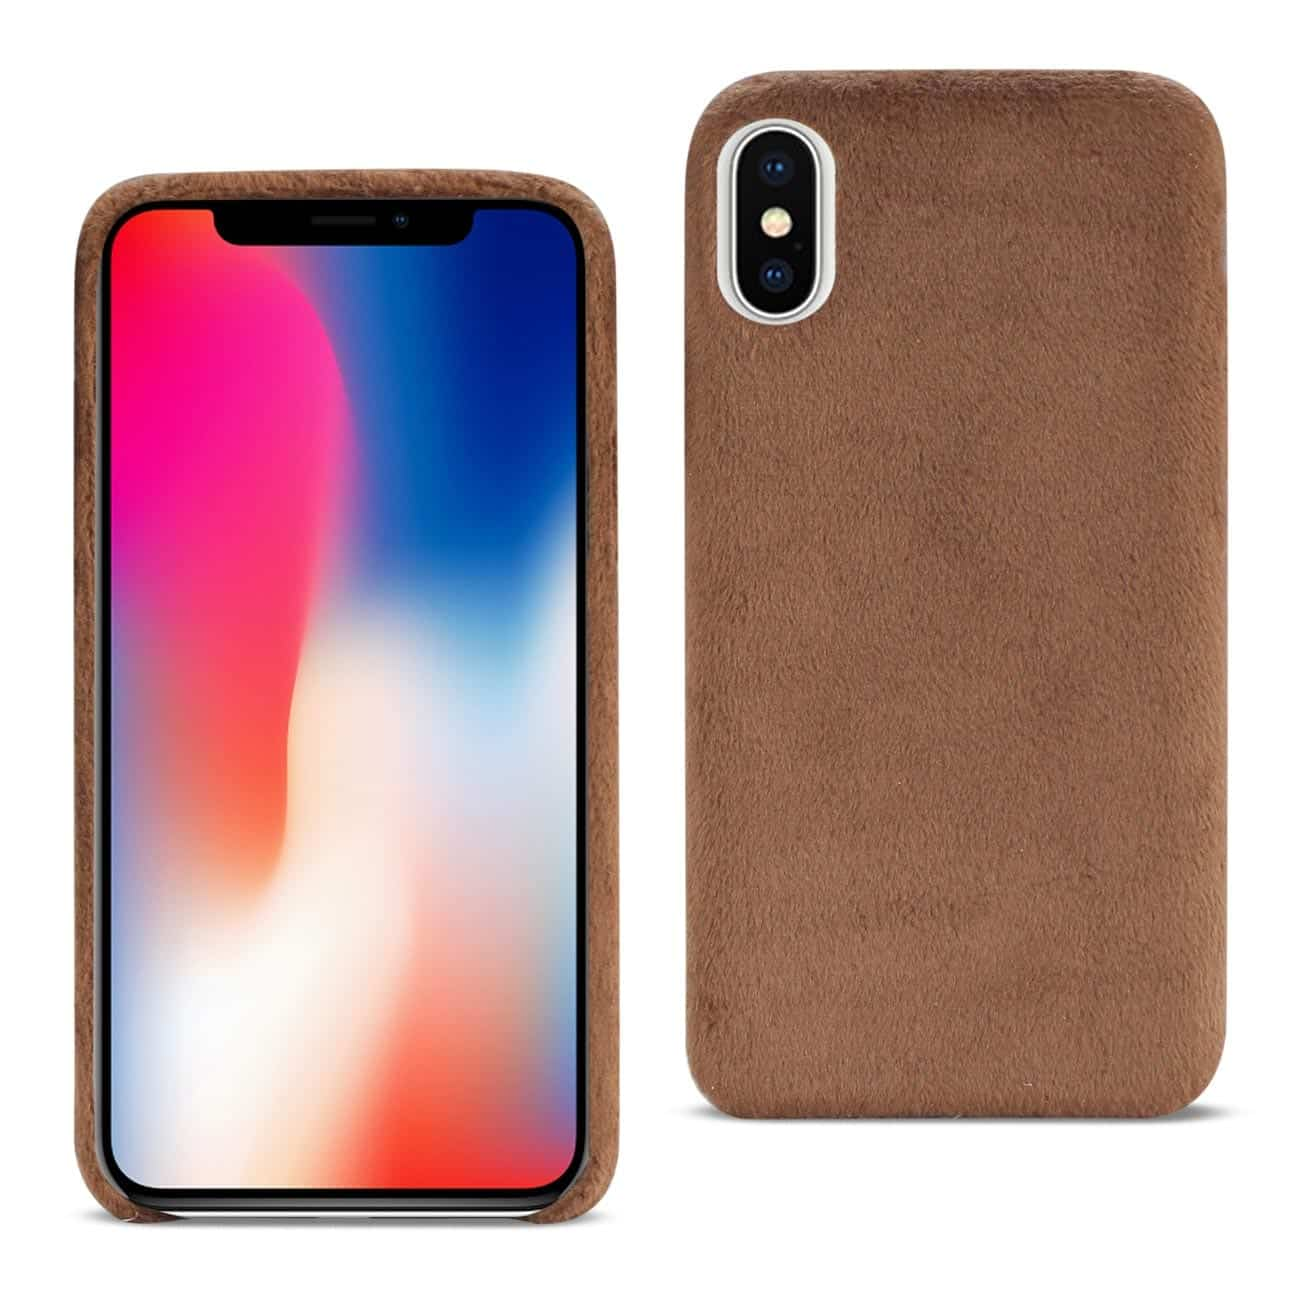 iPhone X Fuzzy Fur Soft TPU Case In Brown